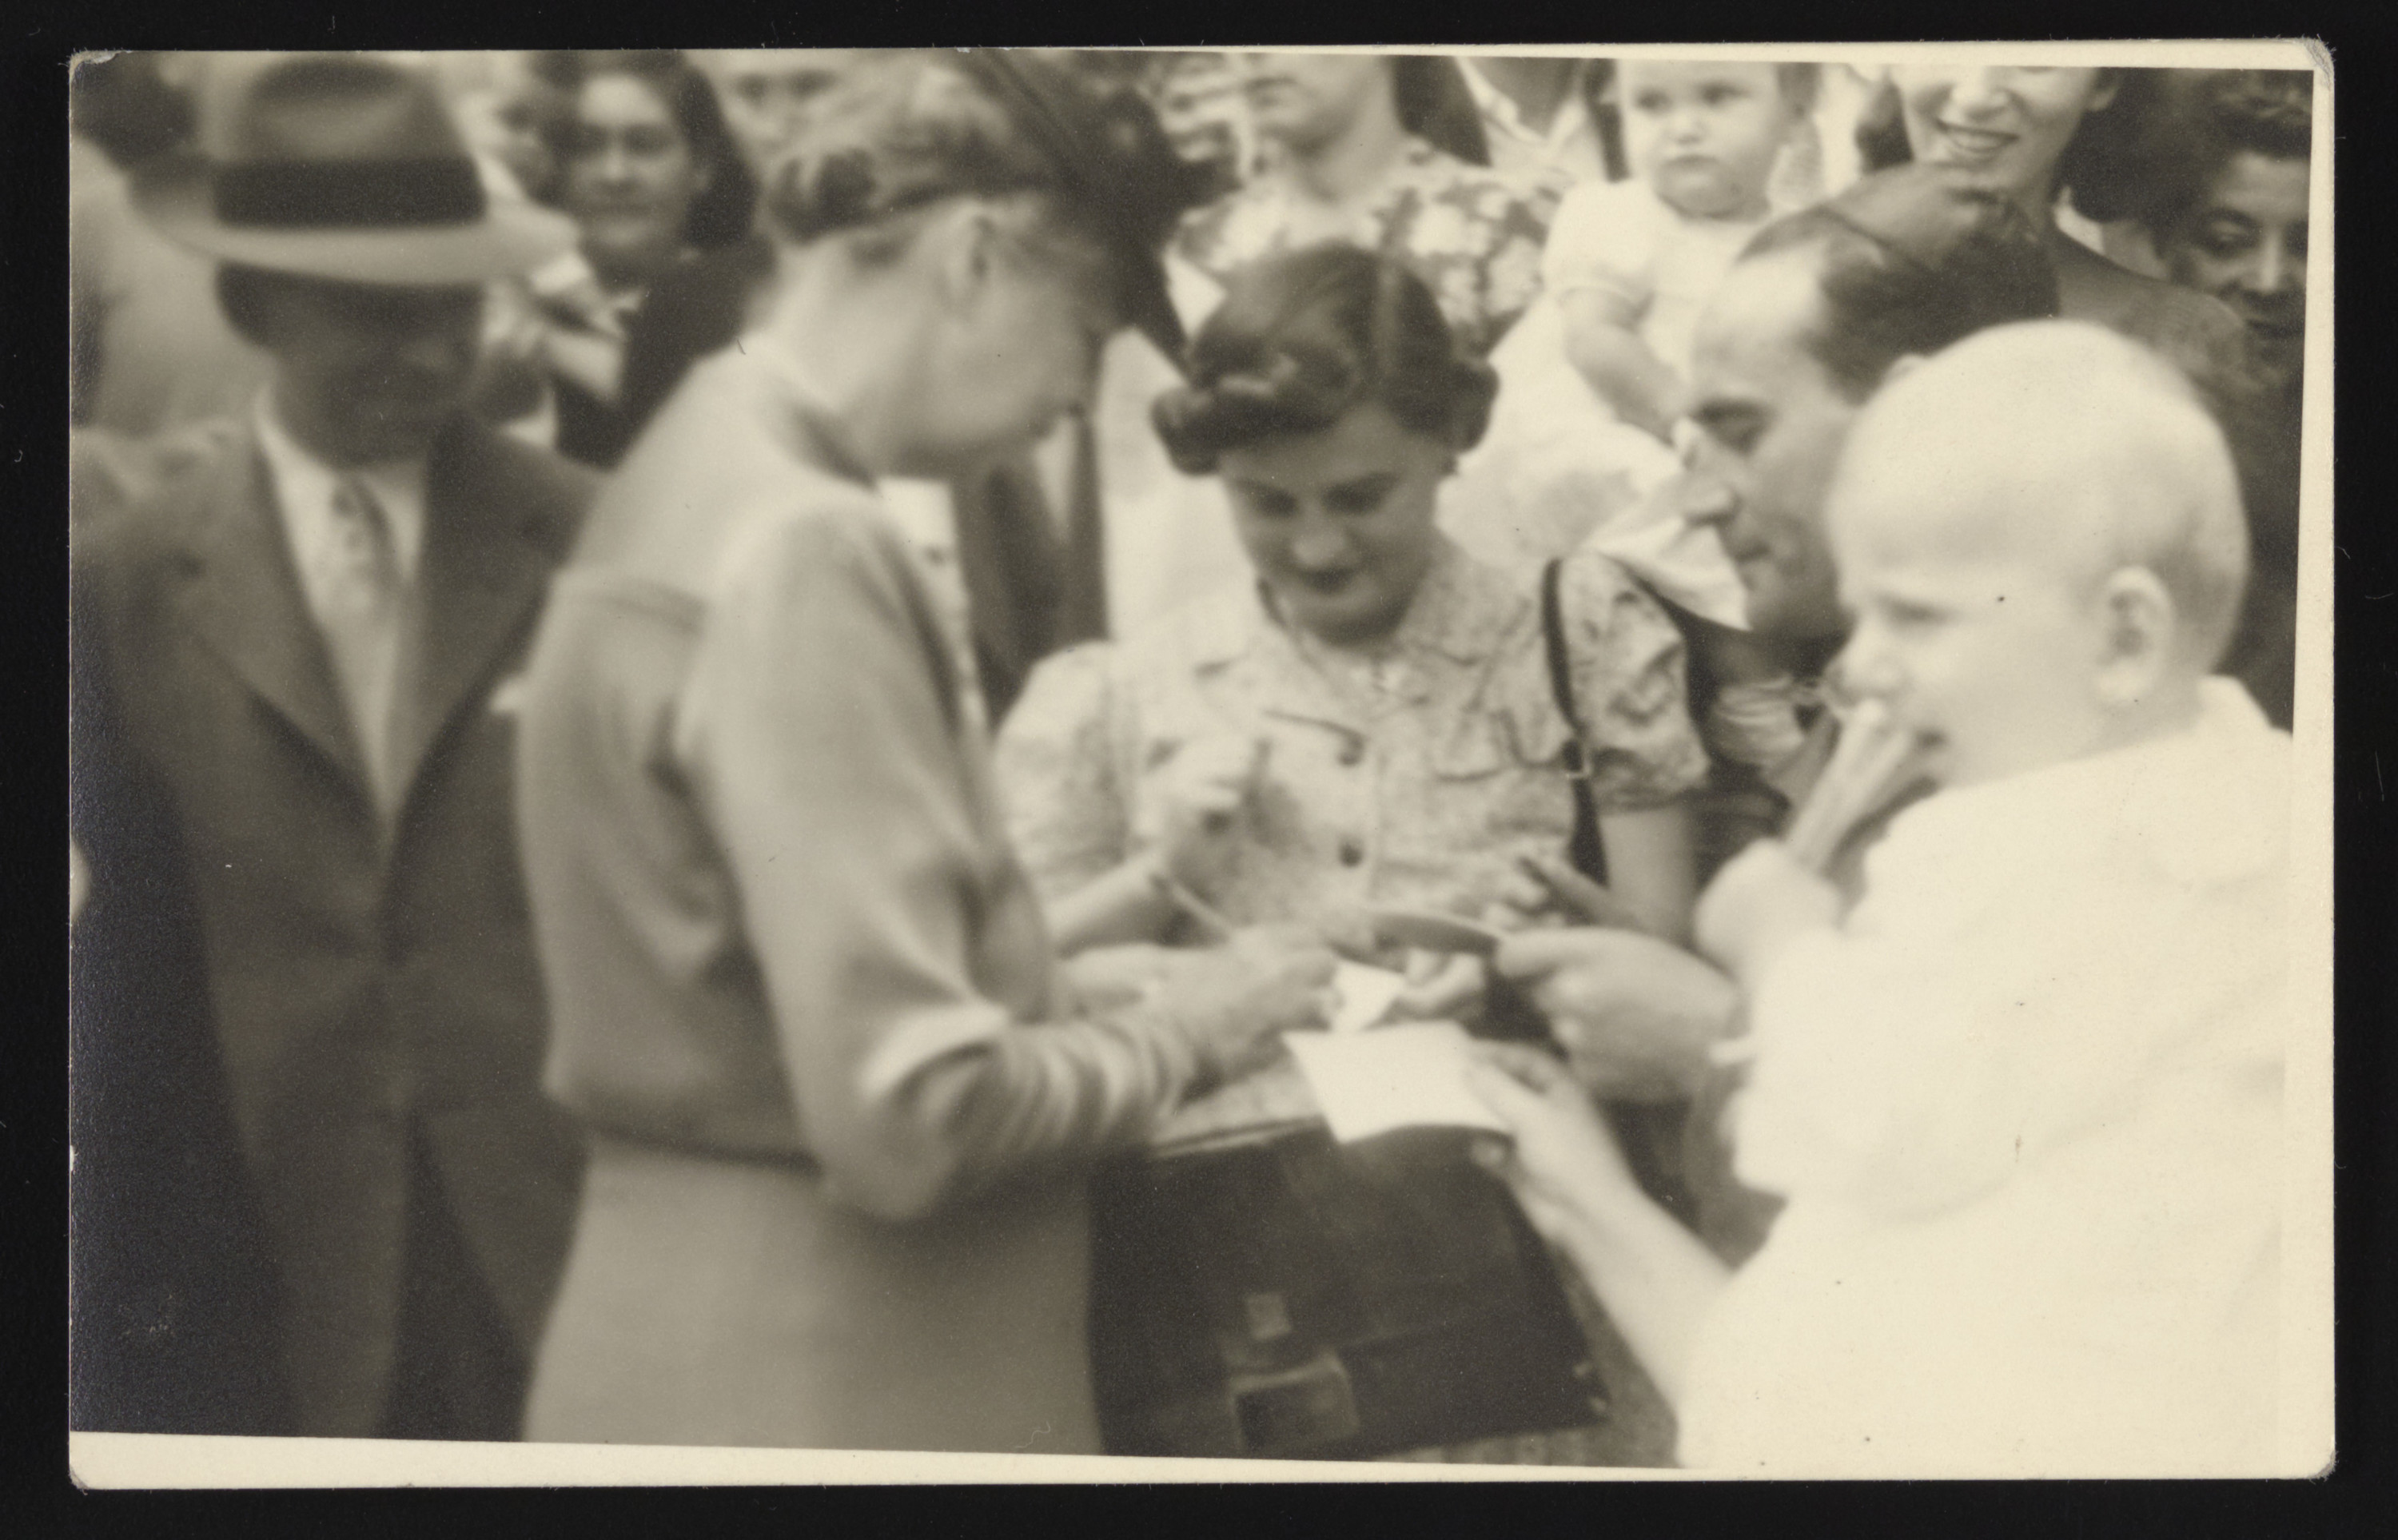 Eleanor Roosevelt visits Fort Ontario Emergency Refugee Shelter in Oswego, NY, where the Hendels were relocated upon arrival to U.S.   Eisik Hendel is standing on the right.